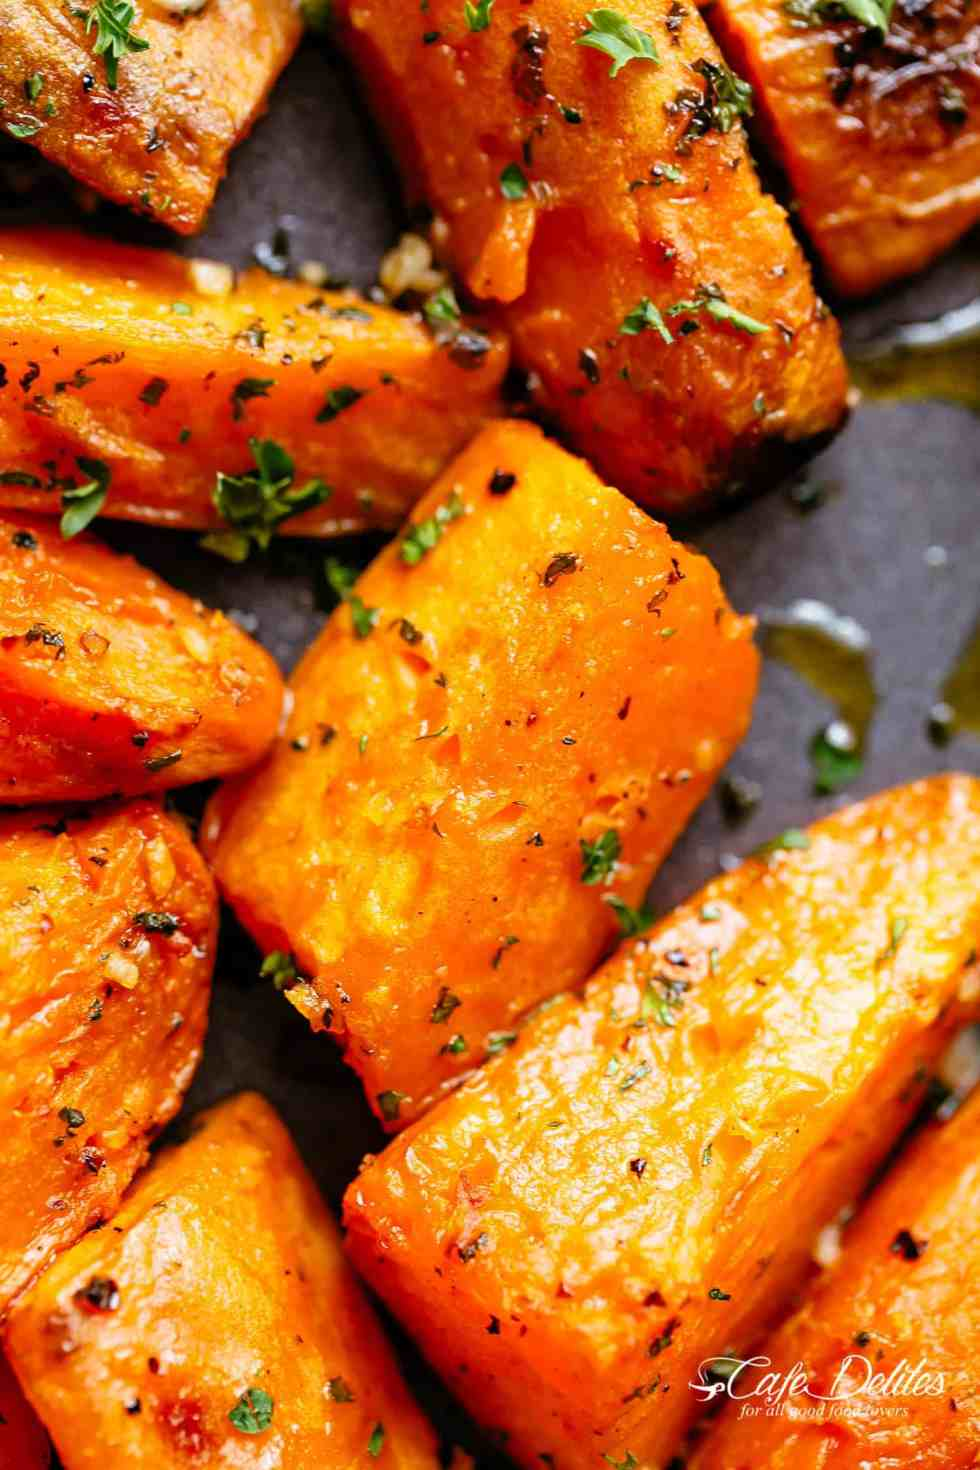 Roasted Sweet Potatoes with garlic, herbs and olive oil.